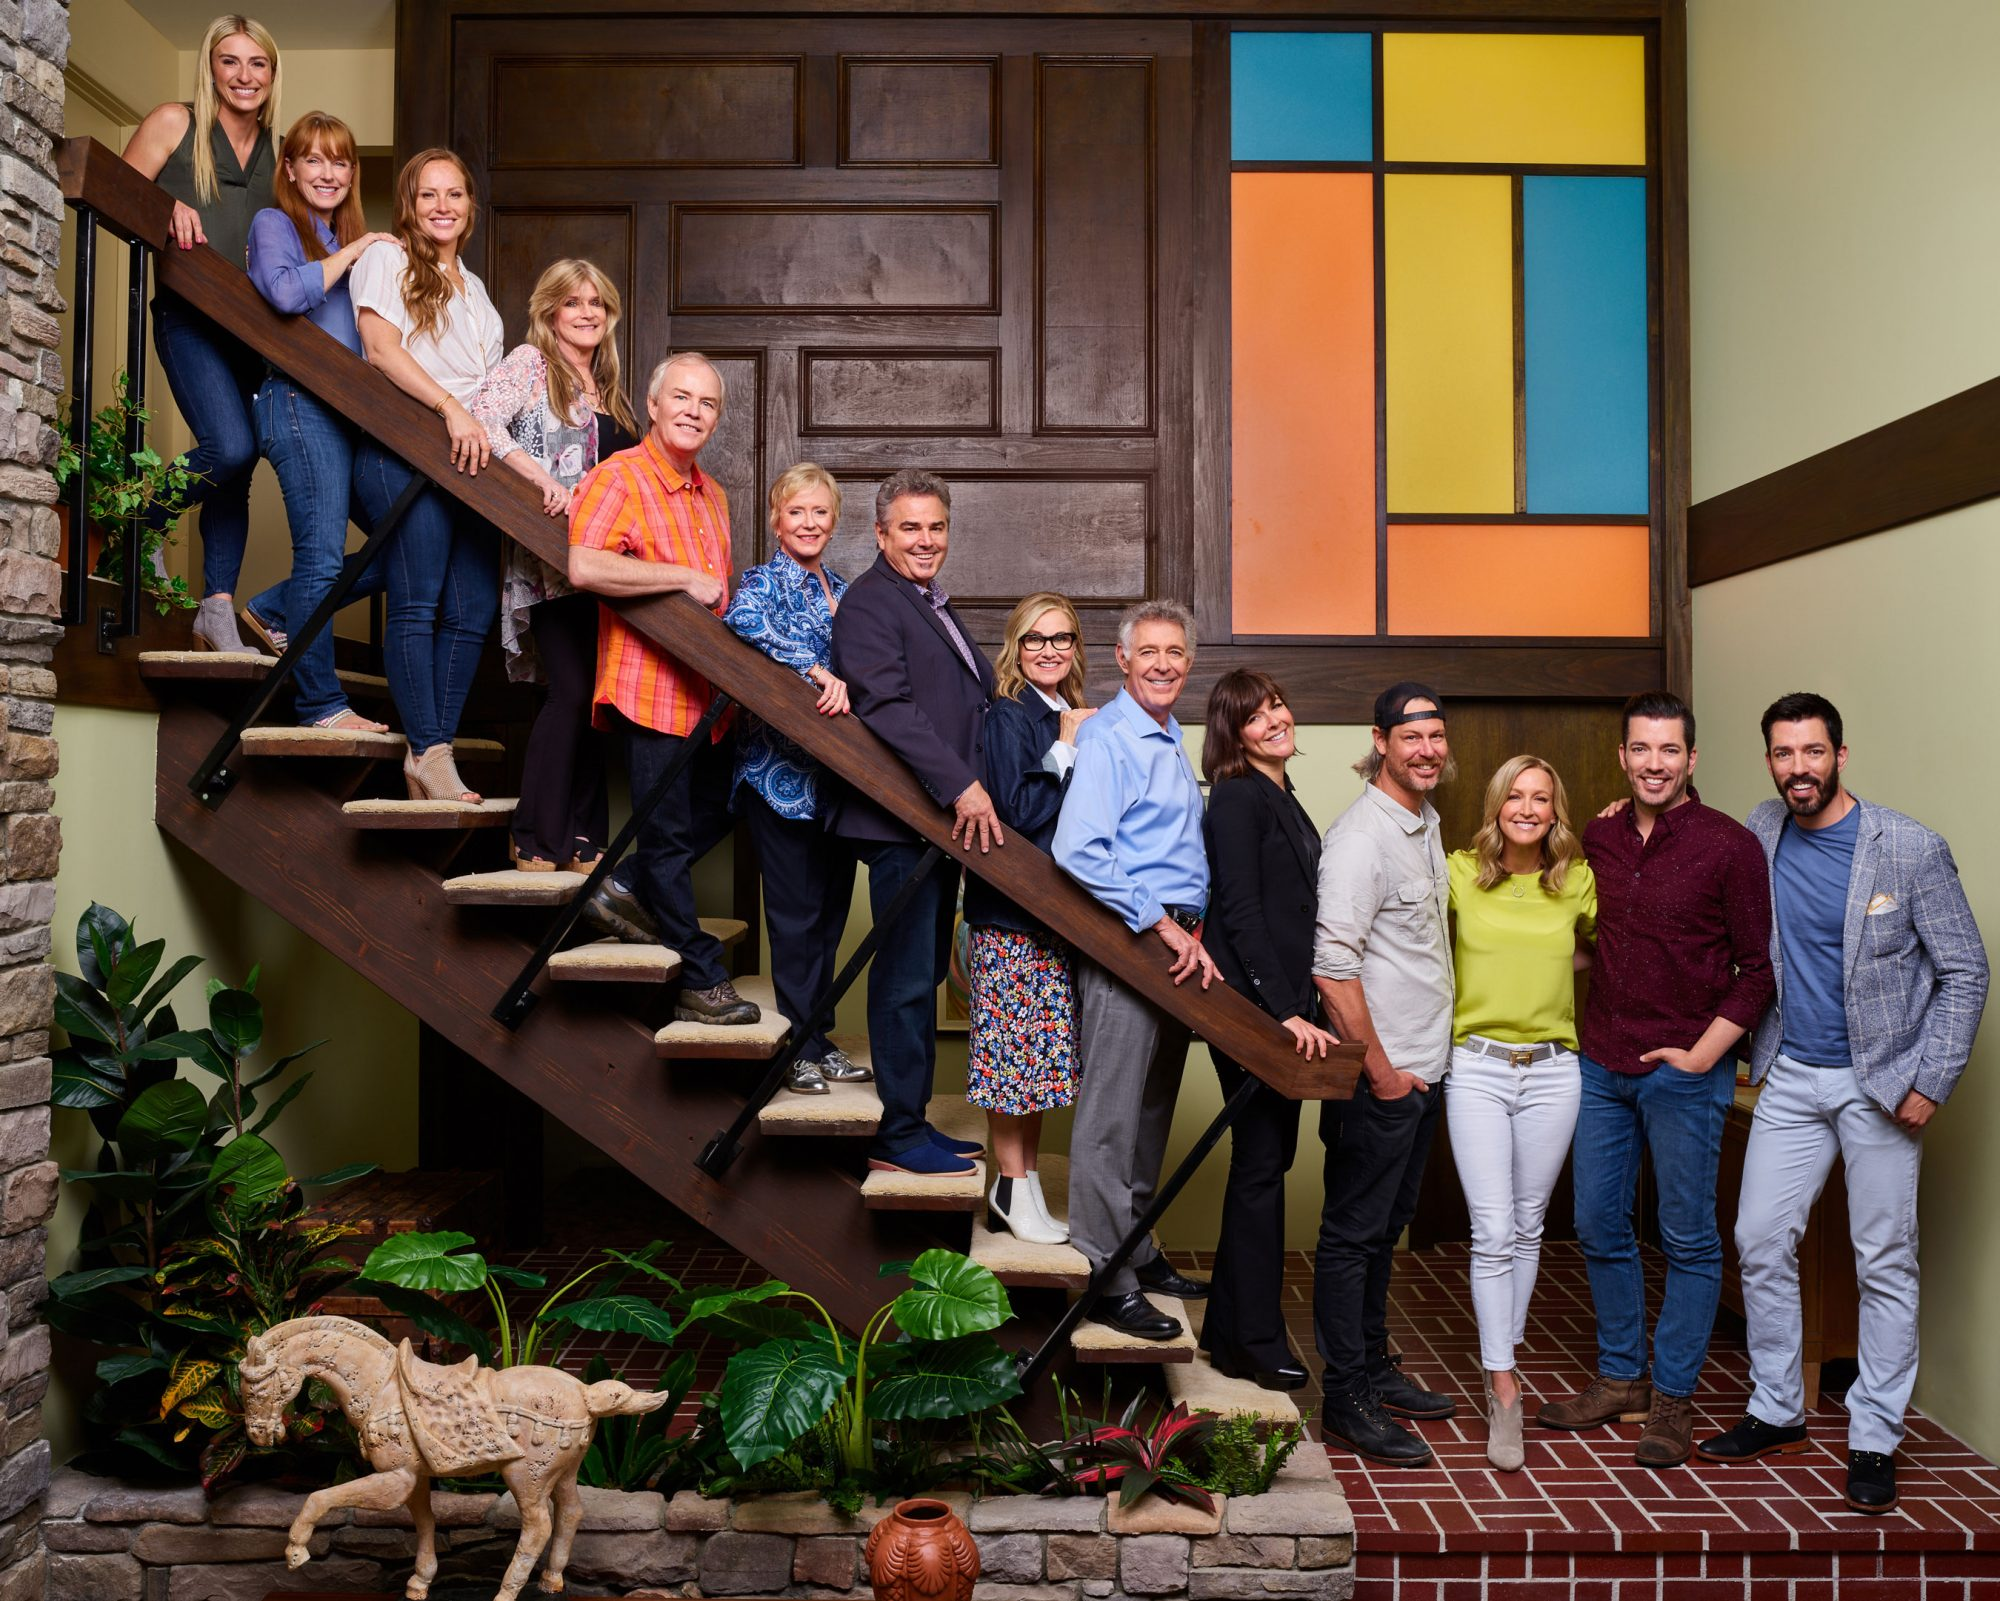 Brady Bunch cast - A Very Brady Renovation.